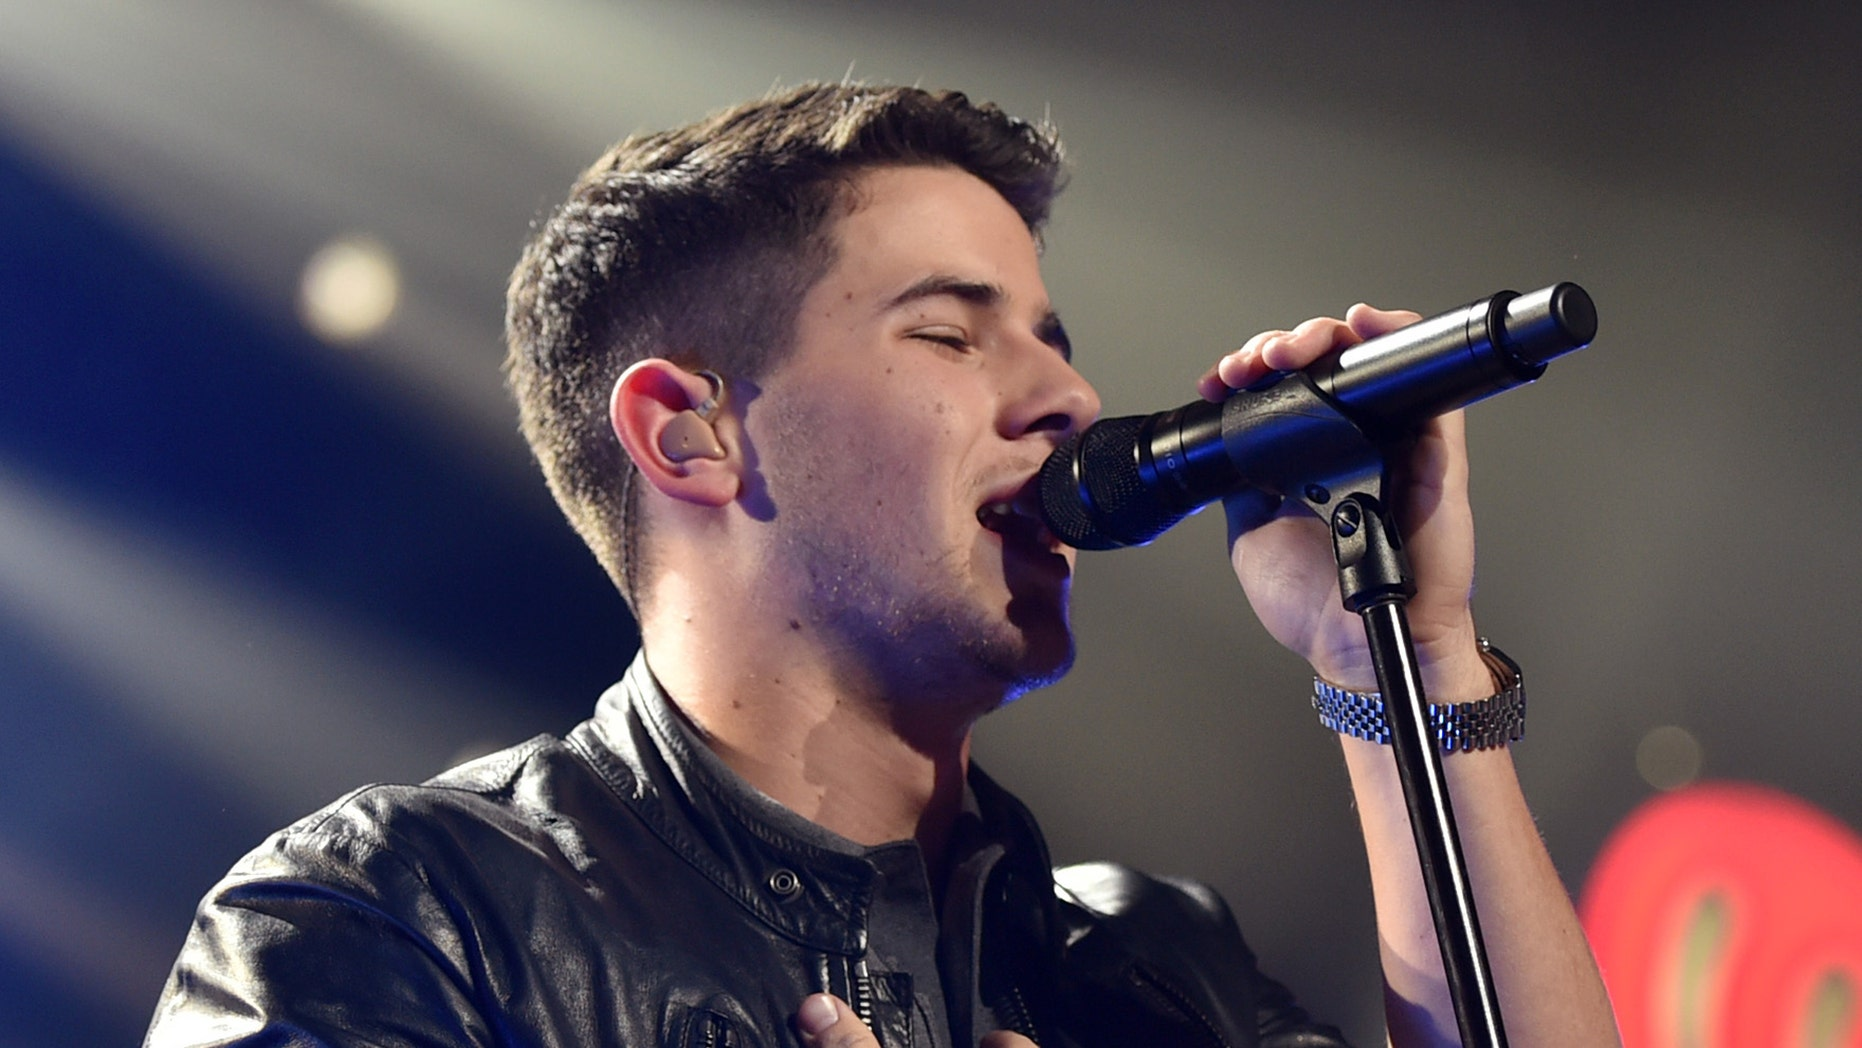 Dec 5, 2014. Nick Jonas performs at the KIIS FM's Jingle Ball at the Staples Center in Los Angeles.